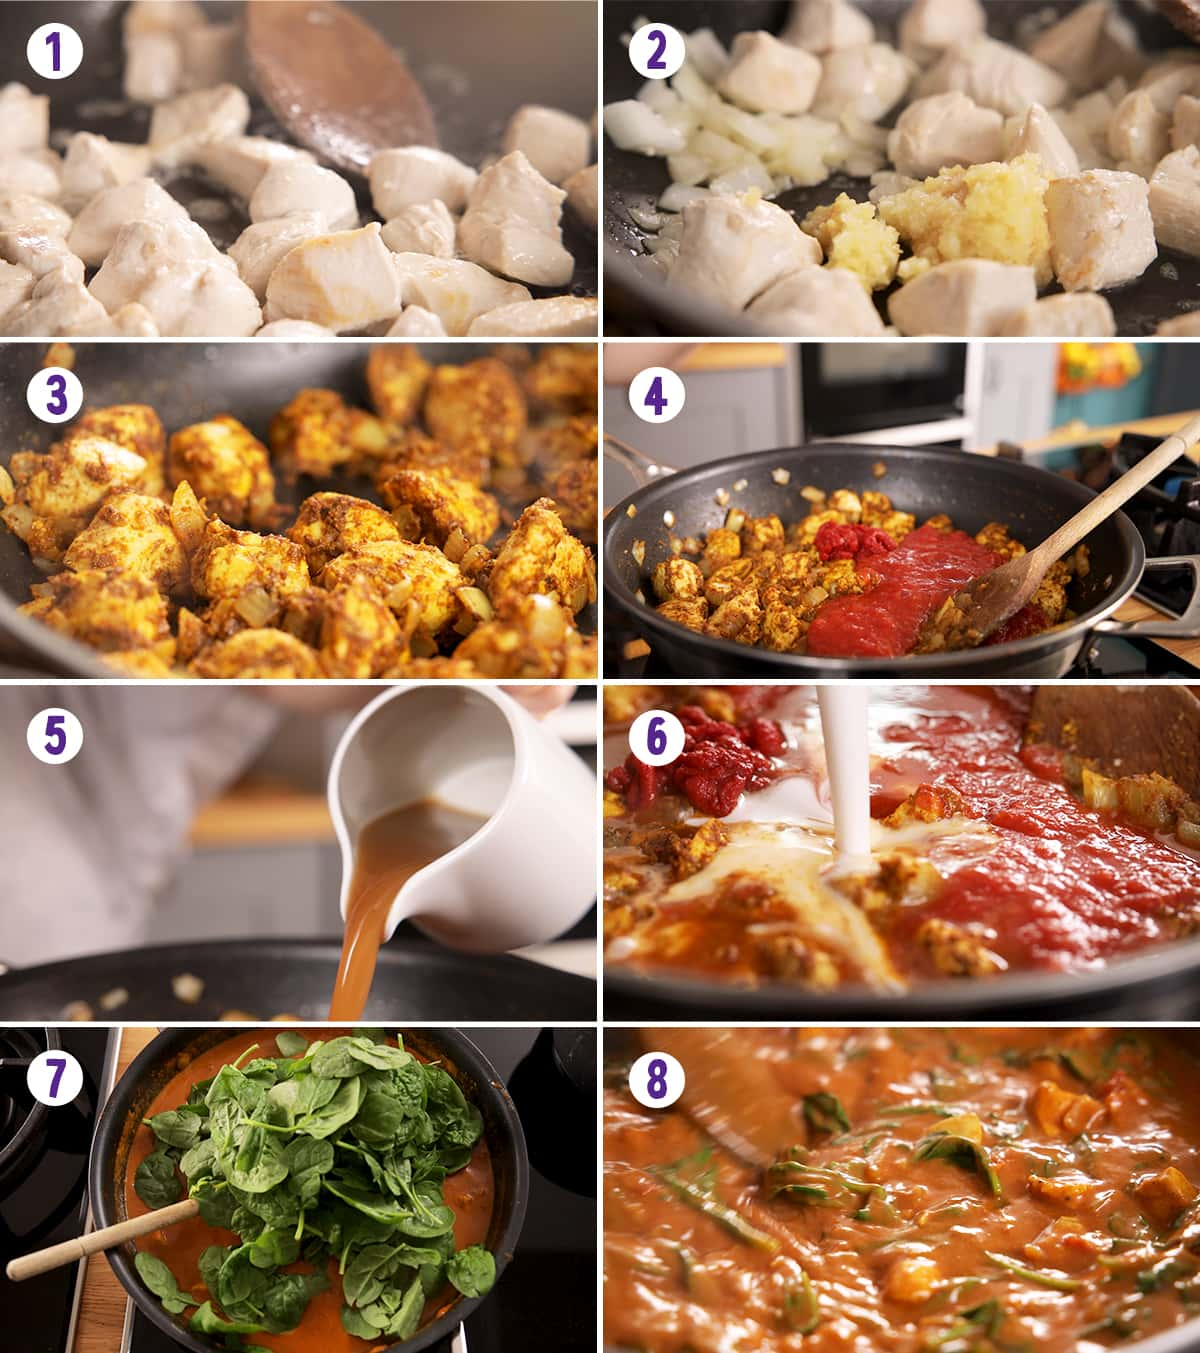 8 image collage showing how to make easy chicken curry